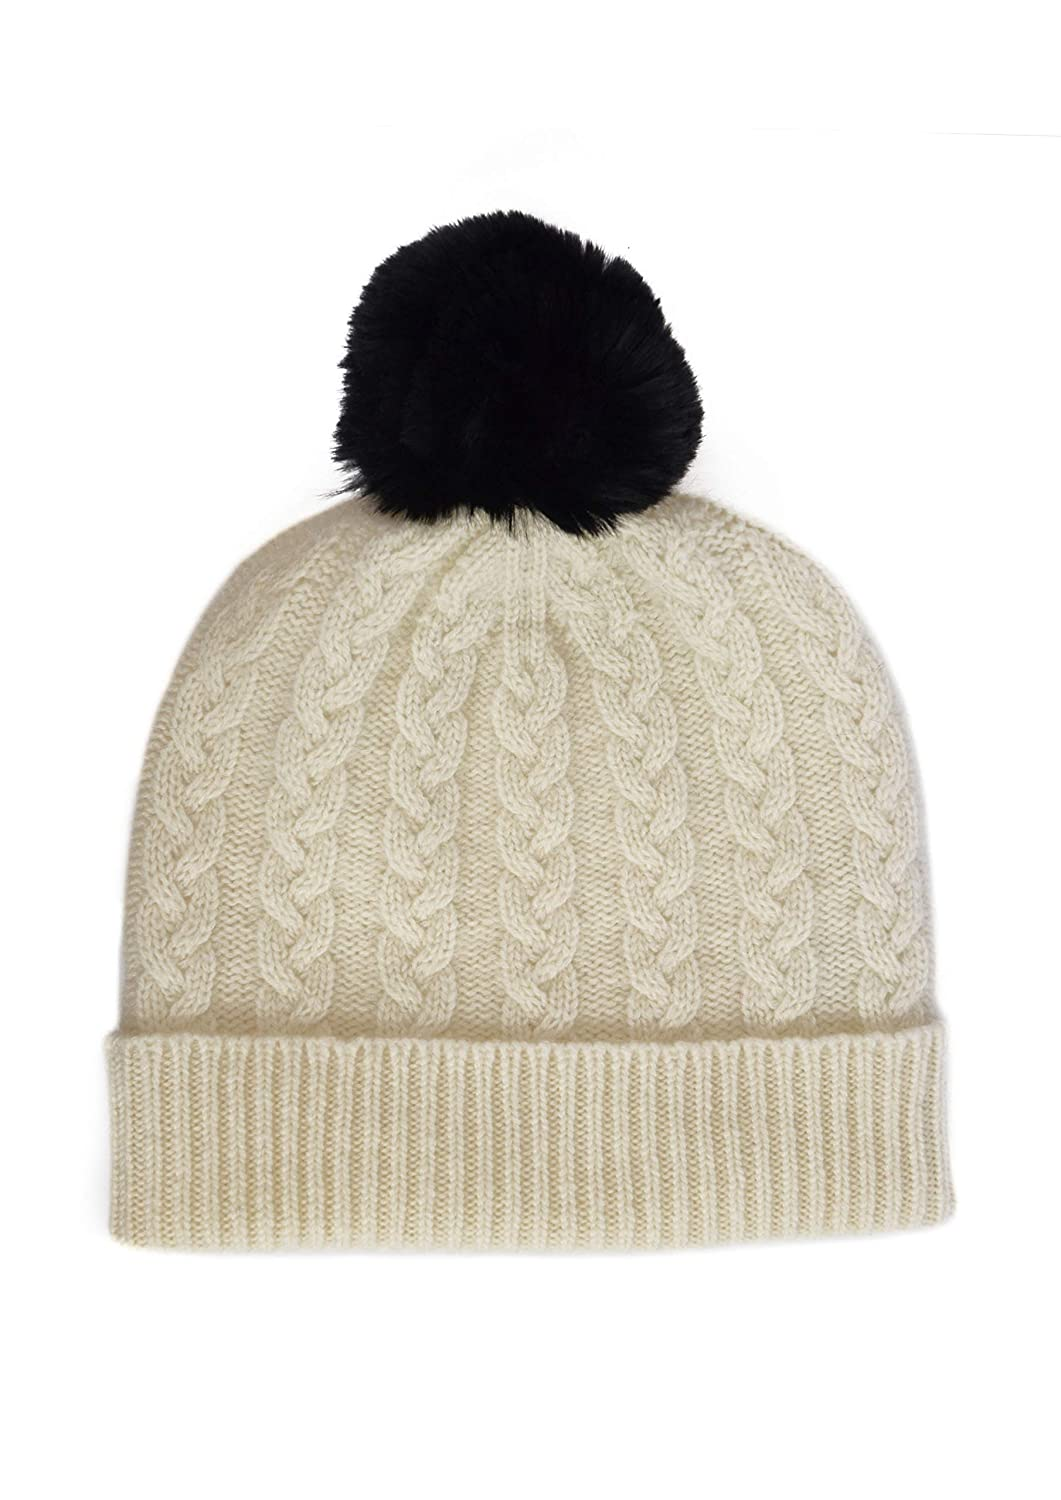 William Lockie Ladies Cashmere Cable Hat in White with Black Faux Fur Pom Pom Made in Scotland